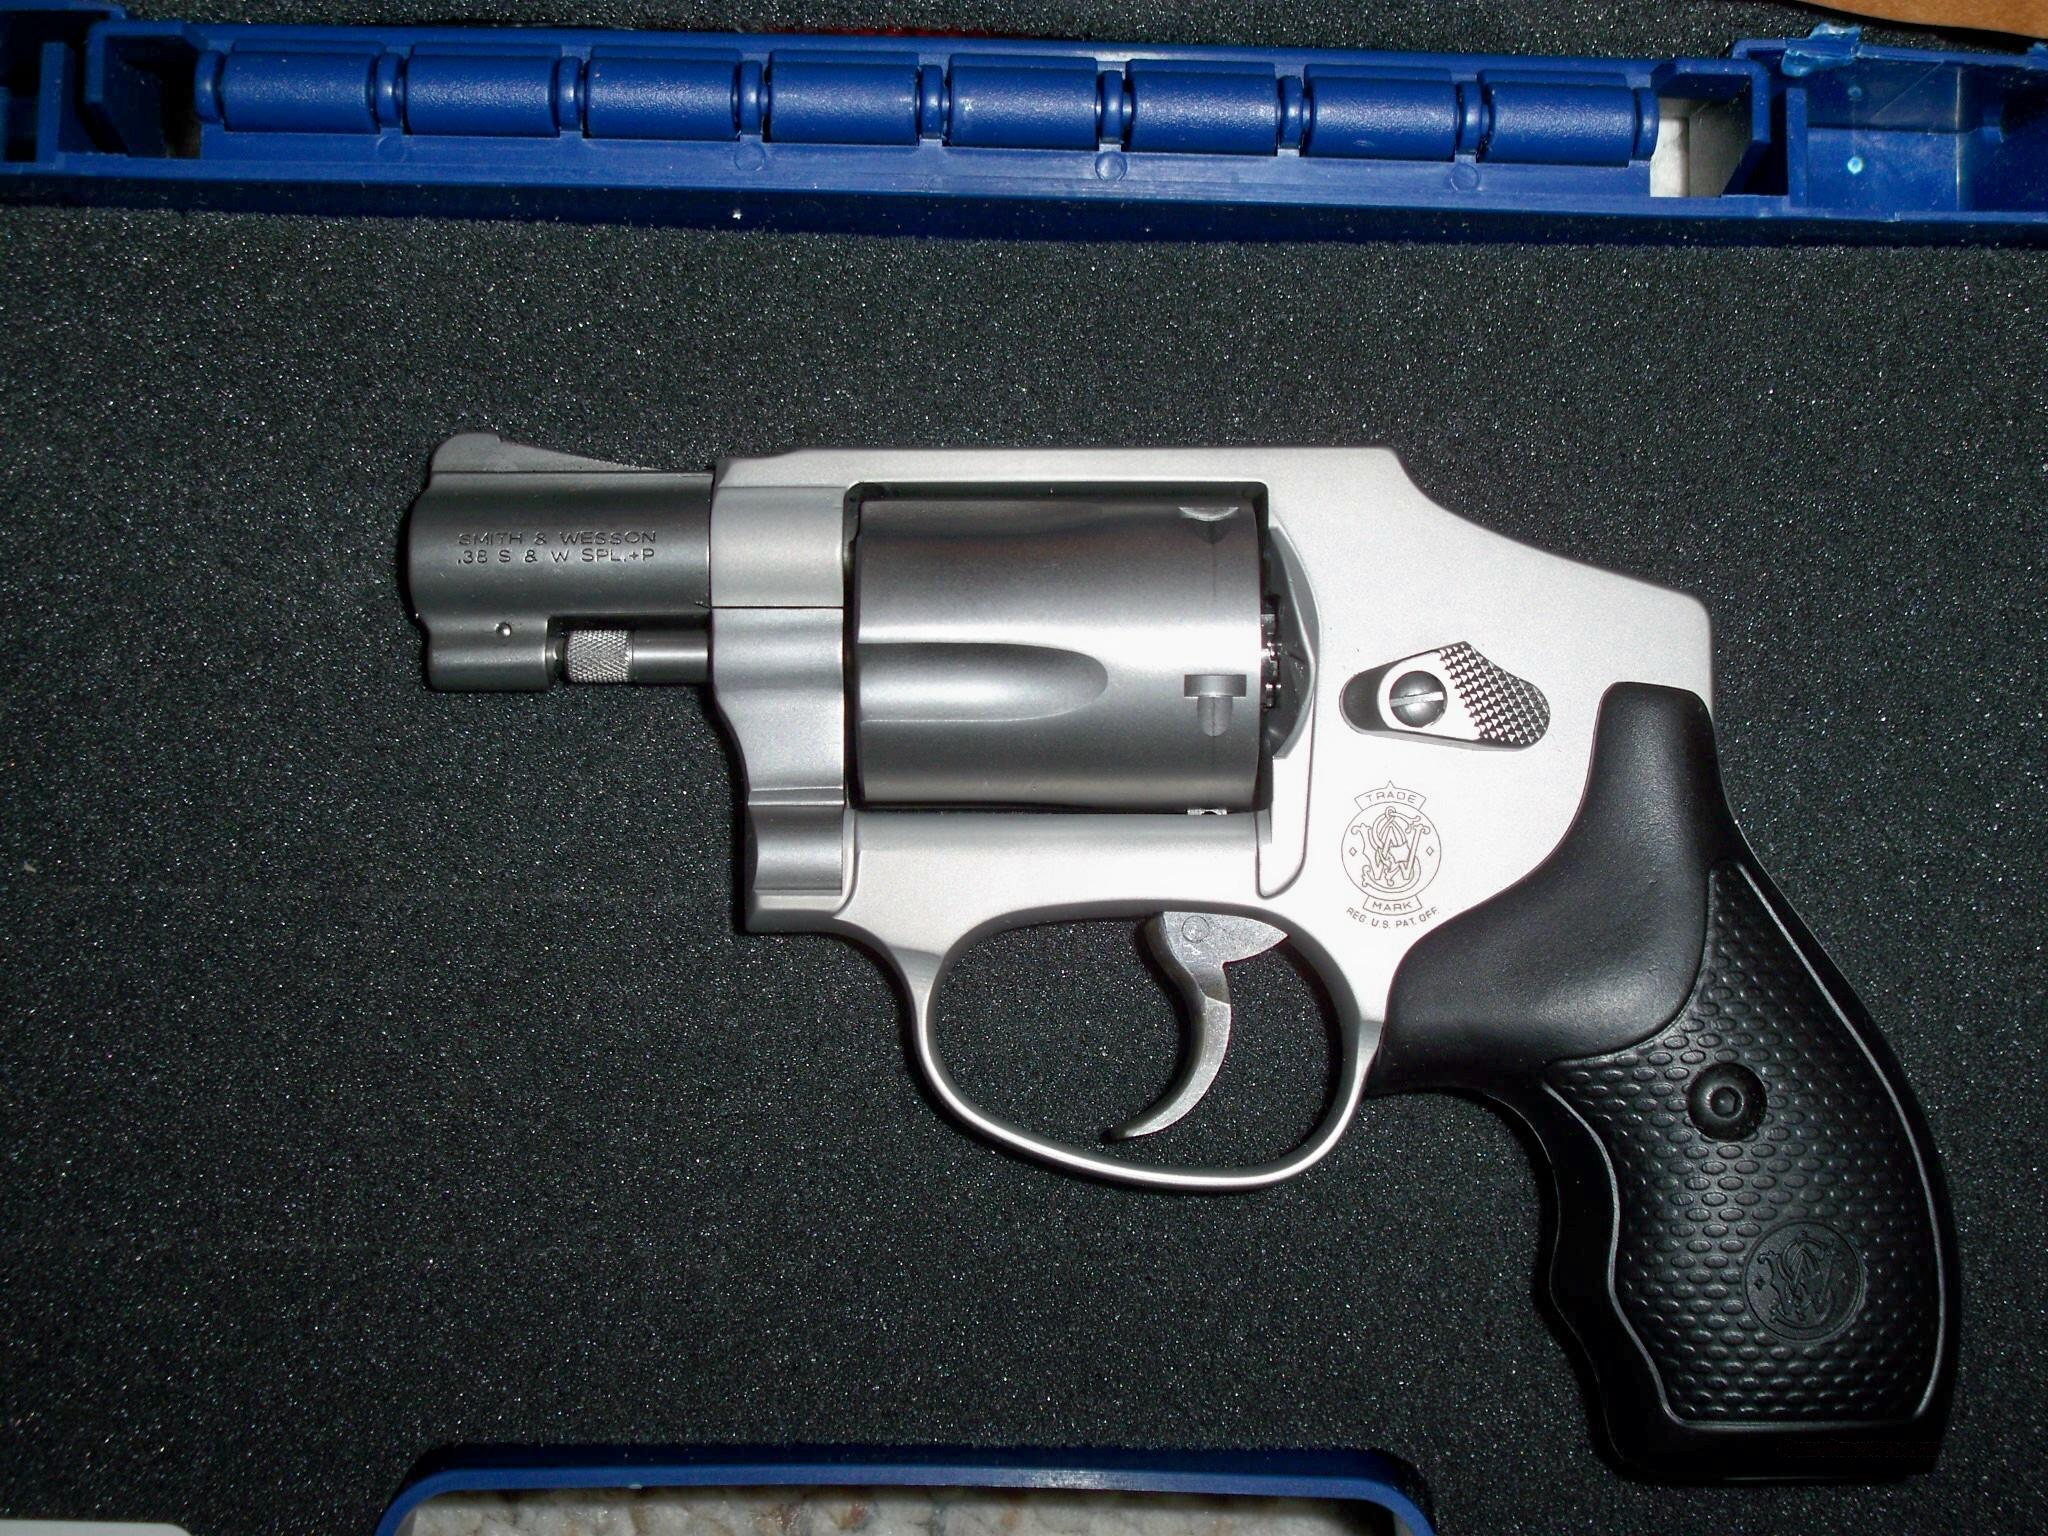 S&W 642 STAINLESS NO INTERNAL LOCK  Guns > Pistols > Smith & Wesson Revolvers > Pocket Pistols